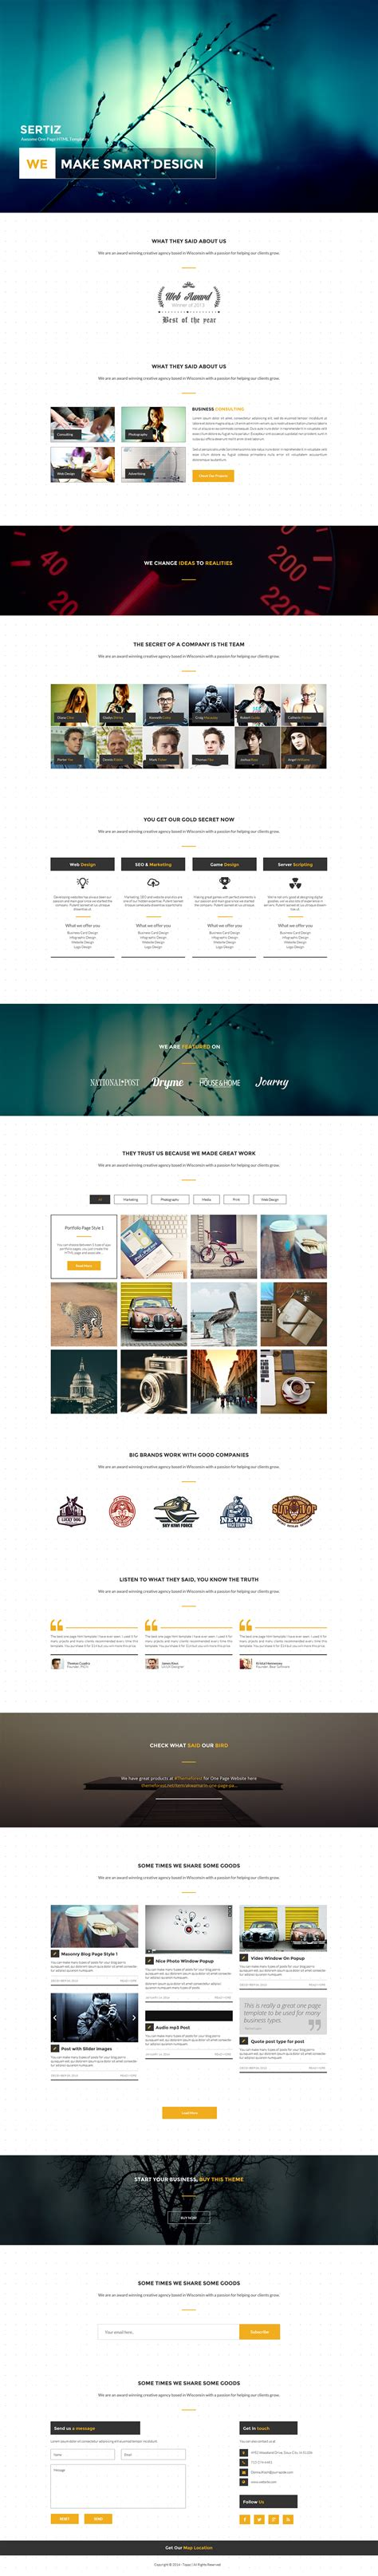 bootstrap layout for all devices sertin free bootstrap template onepage psd on behance